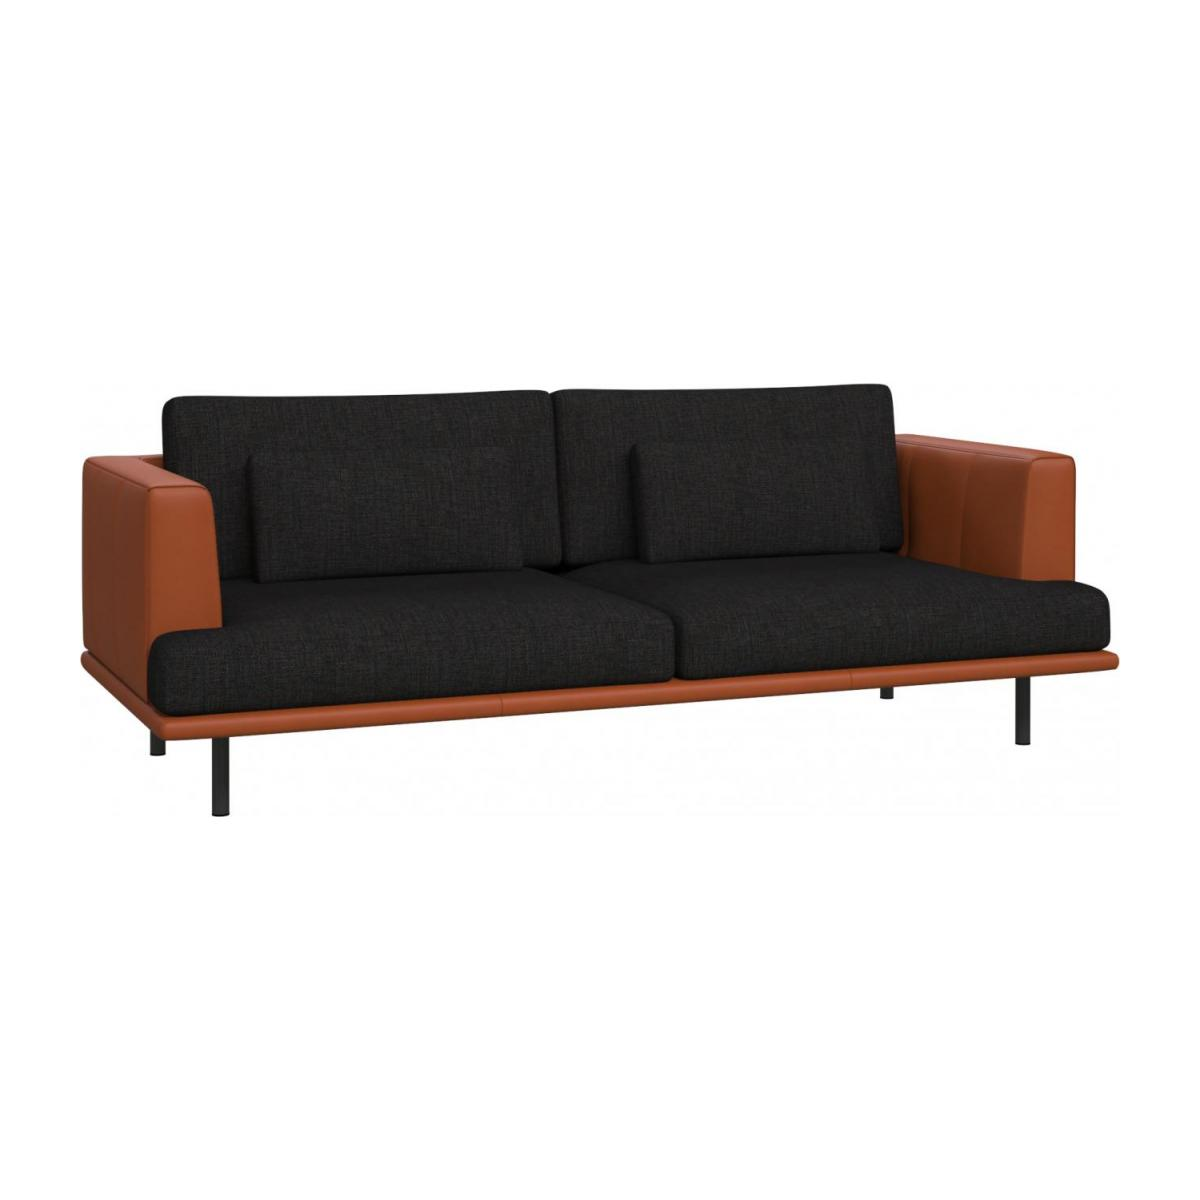 3 seater sofa in Ancio fabric, nero with base and armrests in brown leather n°1